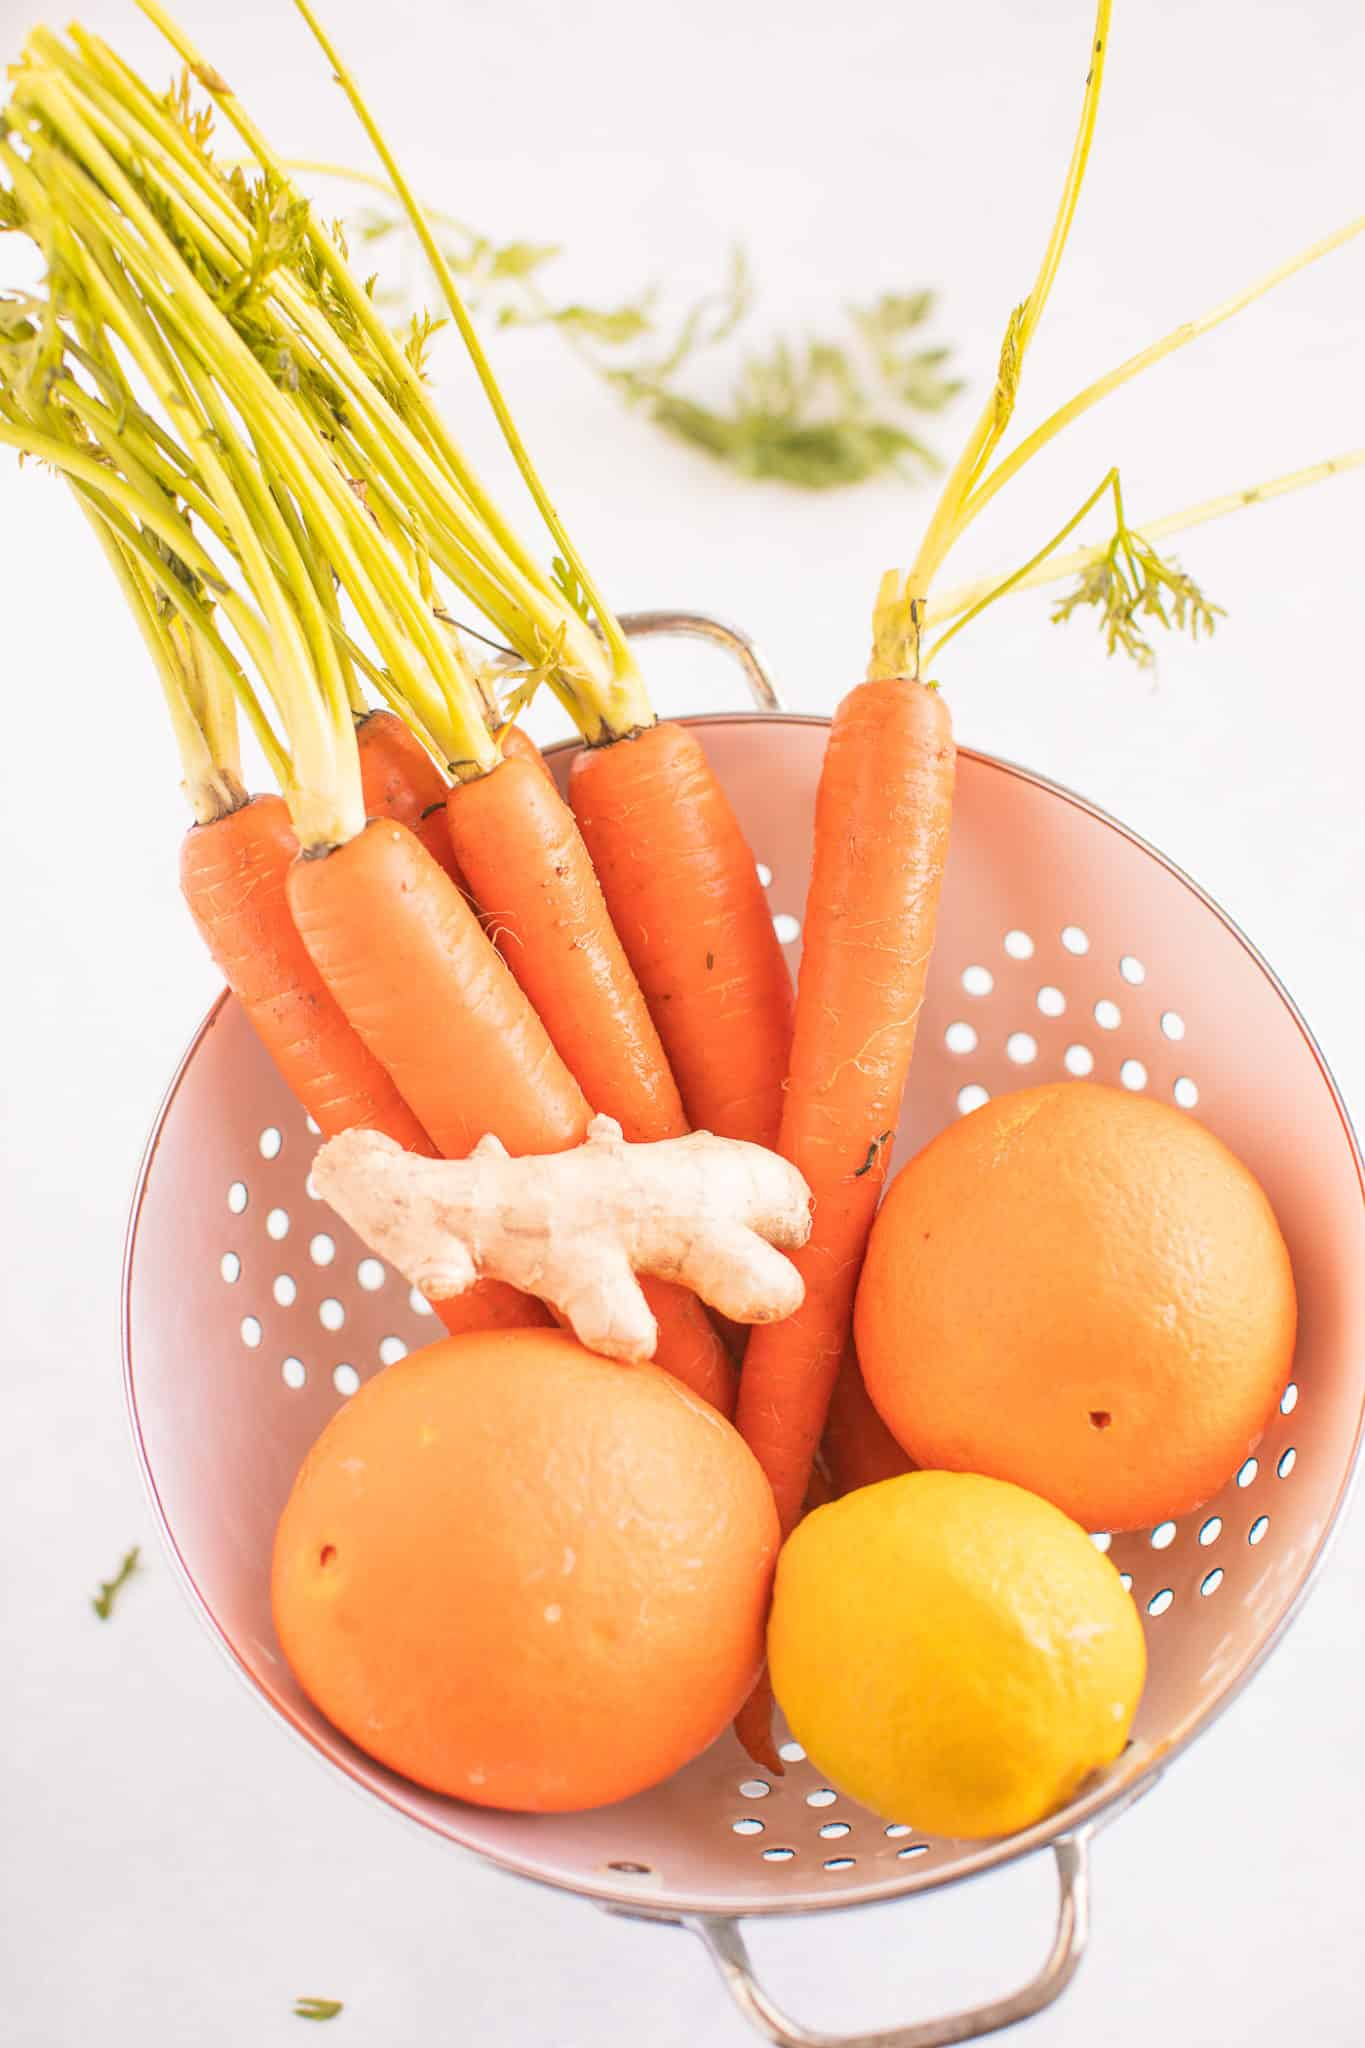 carrot juice ingredients in a colander ready to be juiced